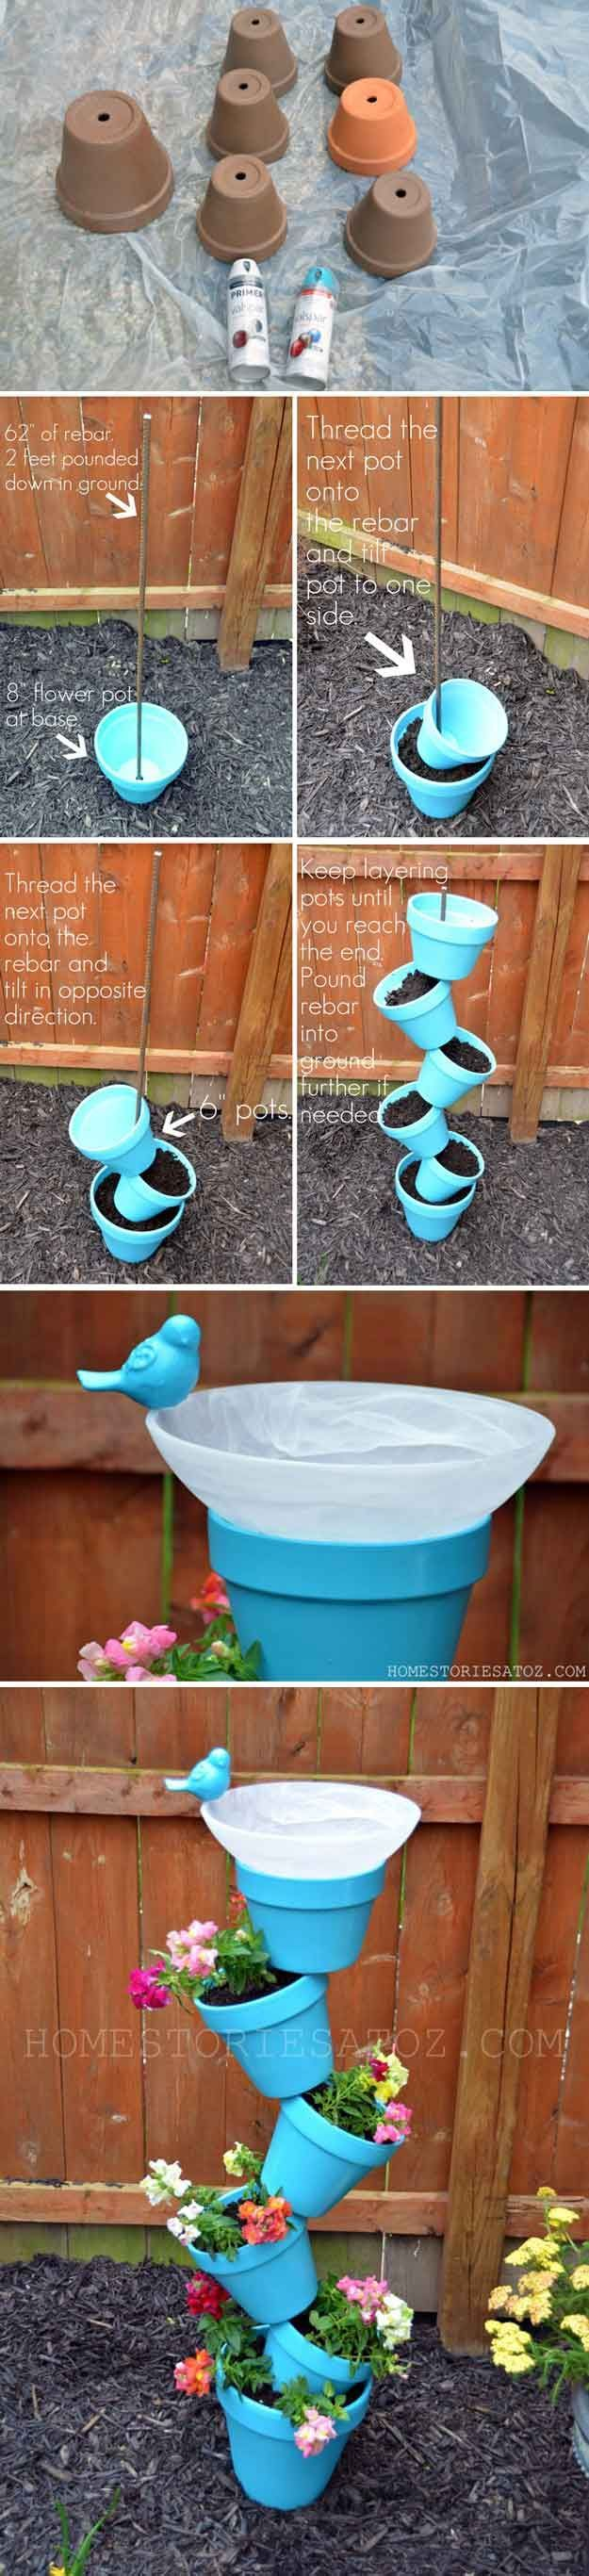 DIY Planter and Bird Bath | 17 Easy DIY Backyard Project Ideas | Easy, Simple and Cheap Backyard Ideas You Must Try This Summer! Check it out at  http://diyready.com/easy-backyard-projects/